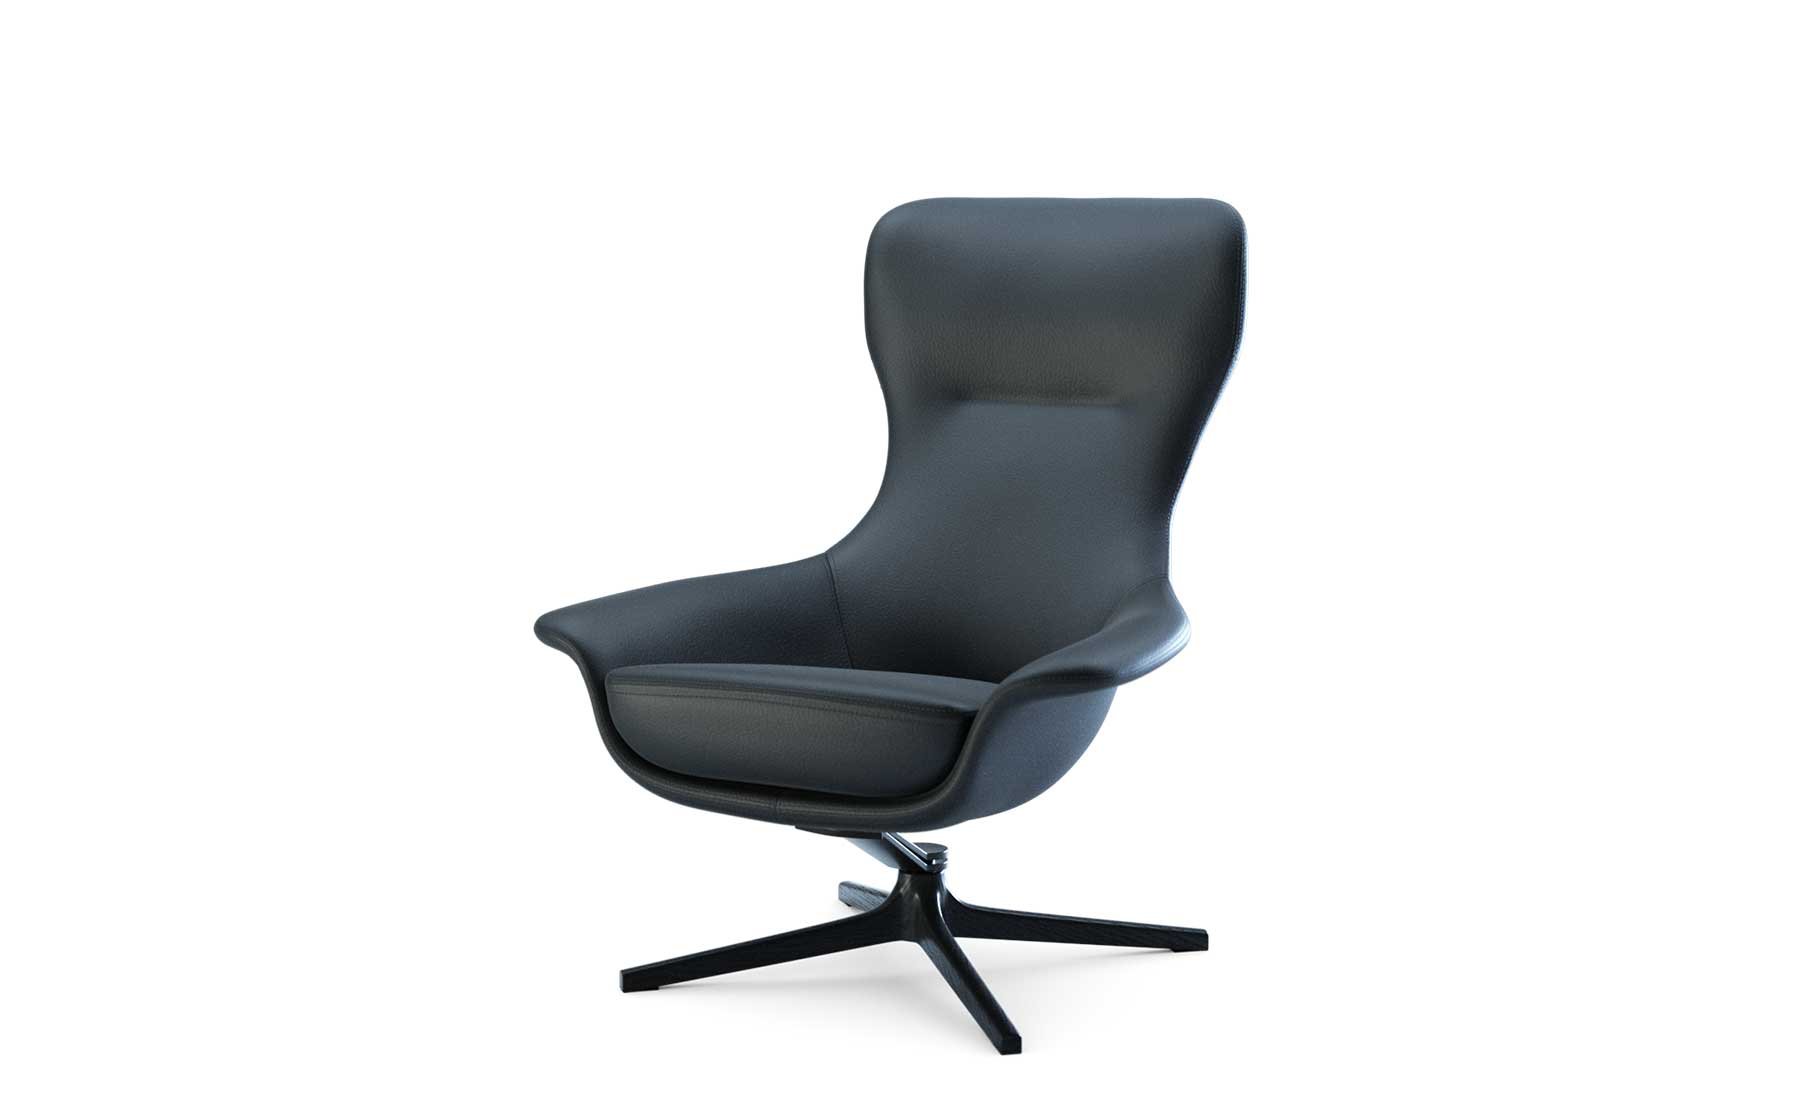 Seymour Chair - Designed by Charles Wilson for King Living ...